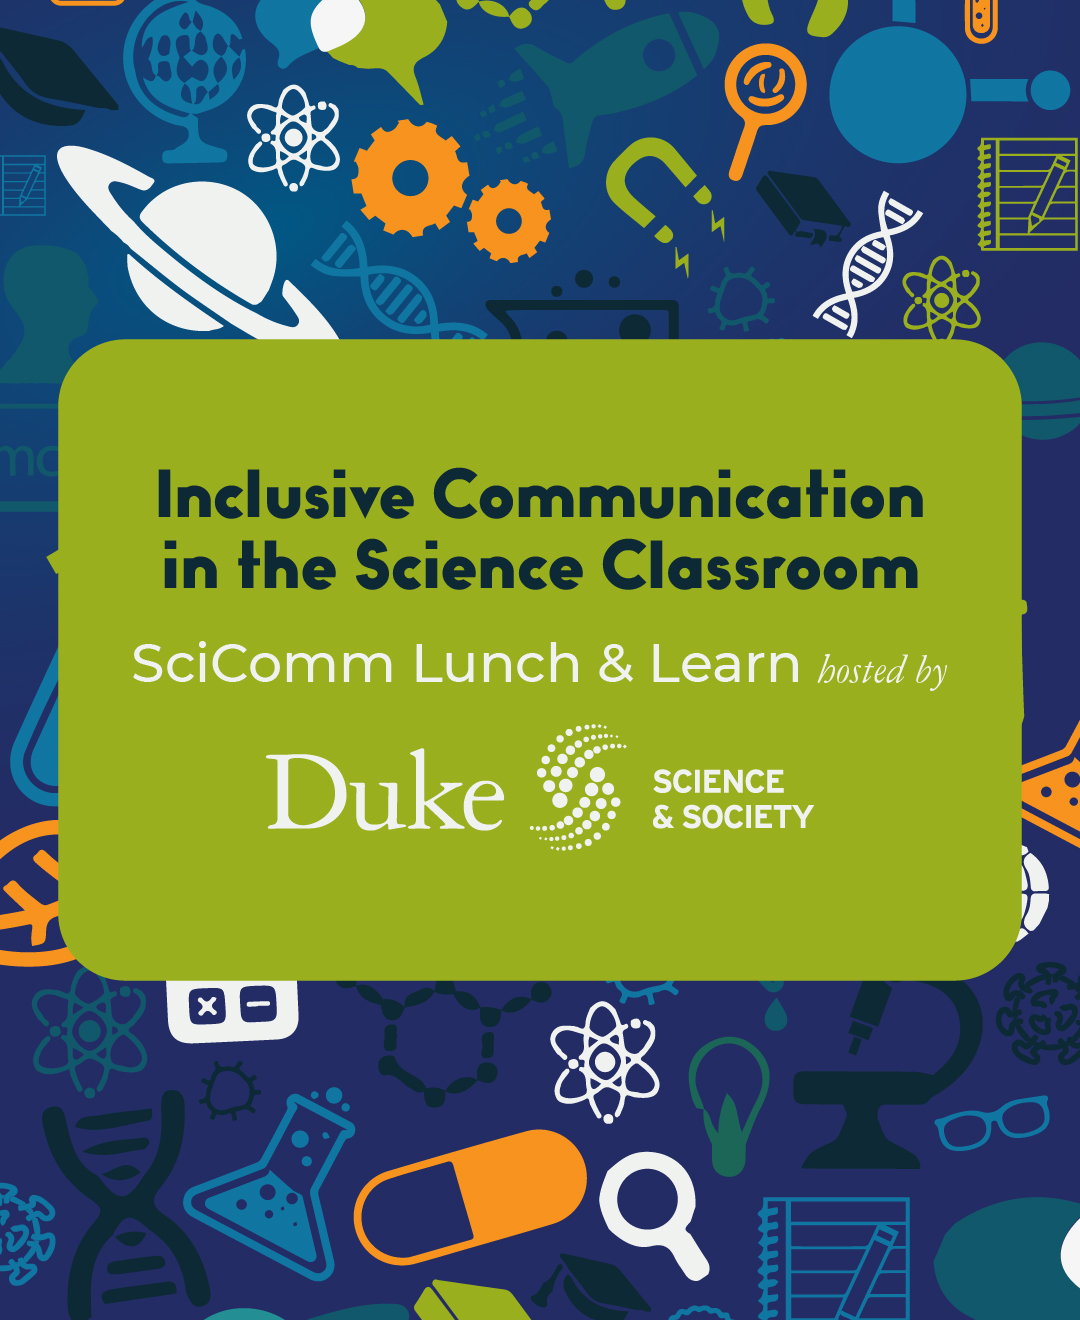 Inclusive Communication in the Science Classroom